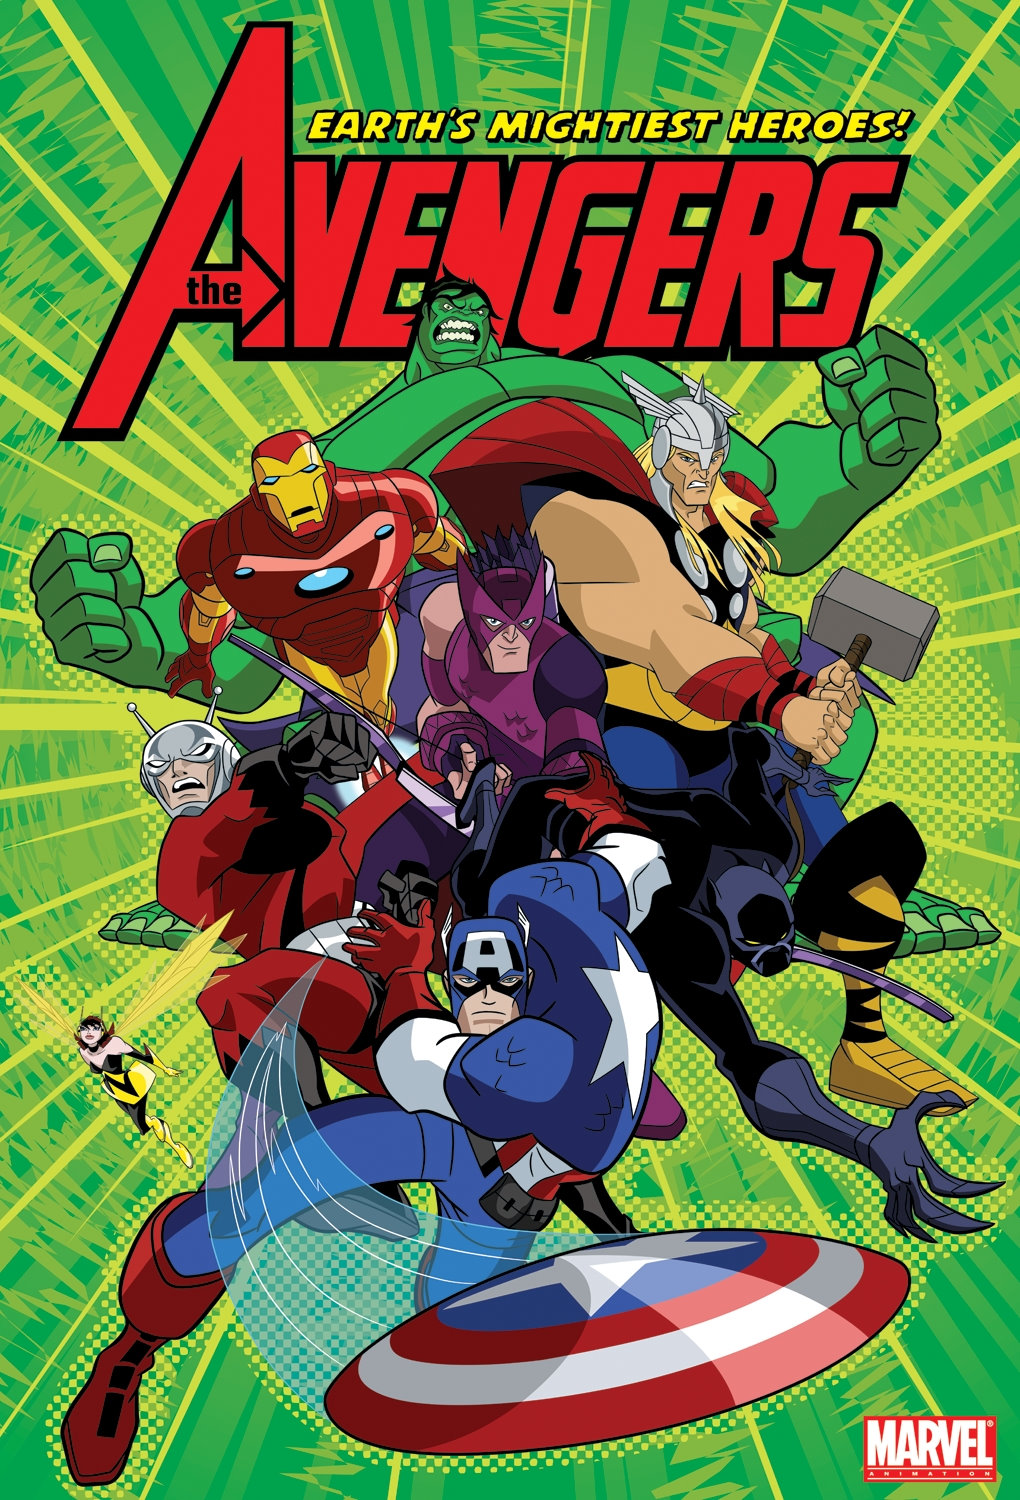 The Avengers: Earth's Mightiest Heroes (2010–2012)